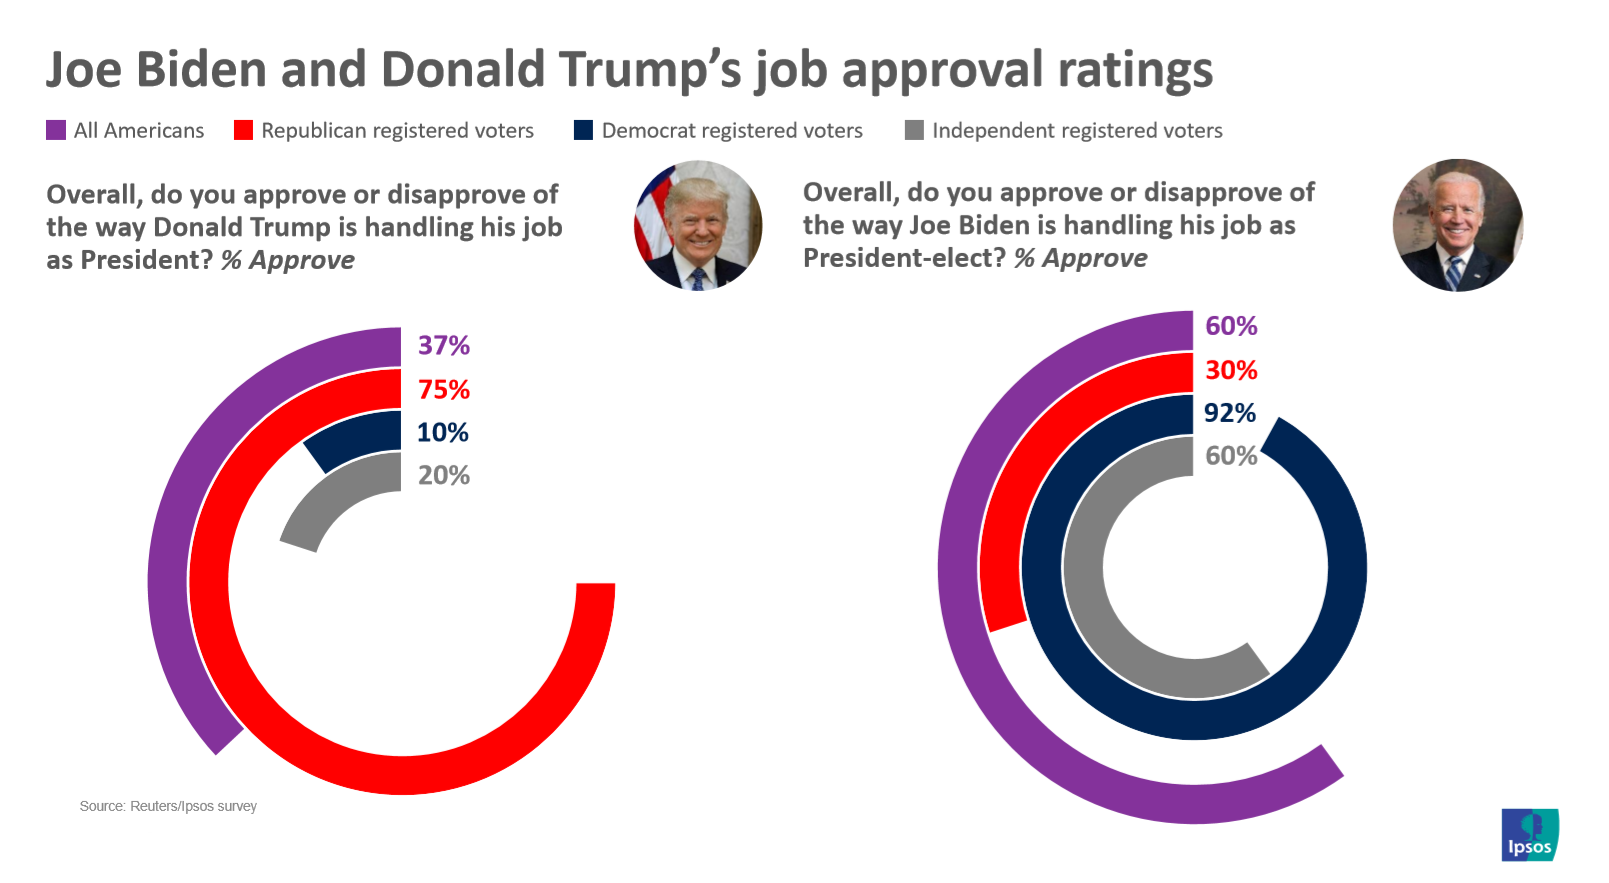 Trump and Biden approval ratings